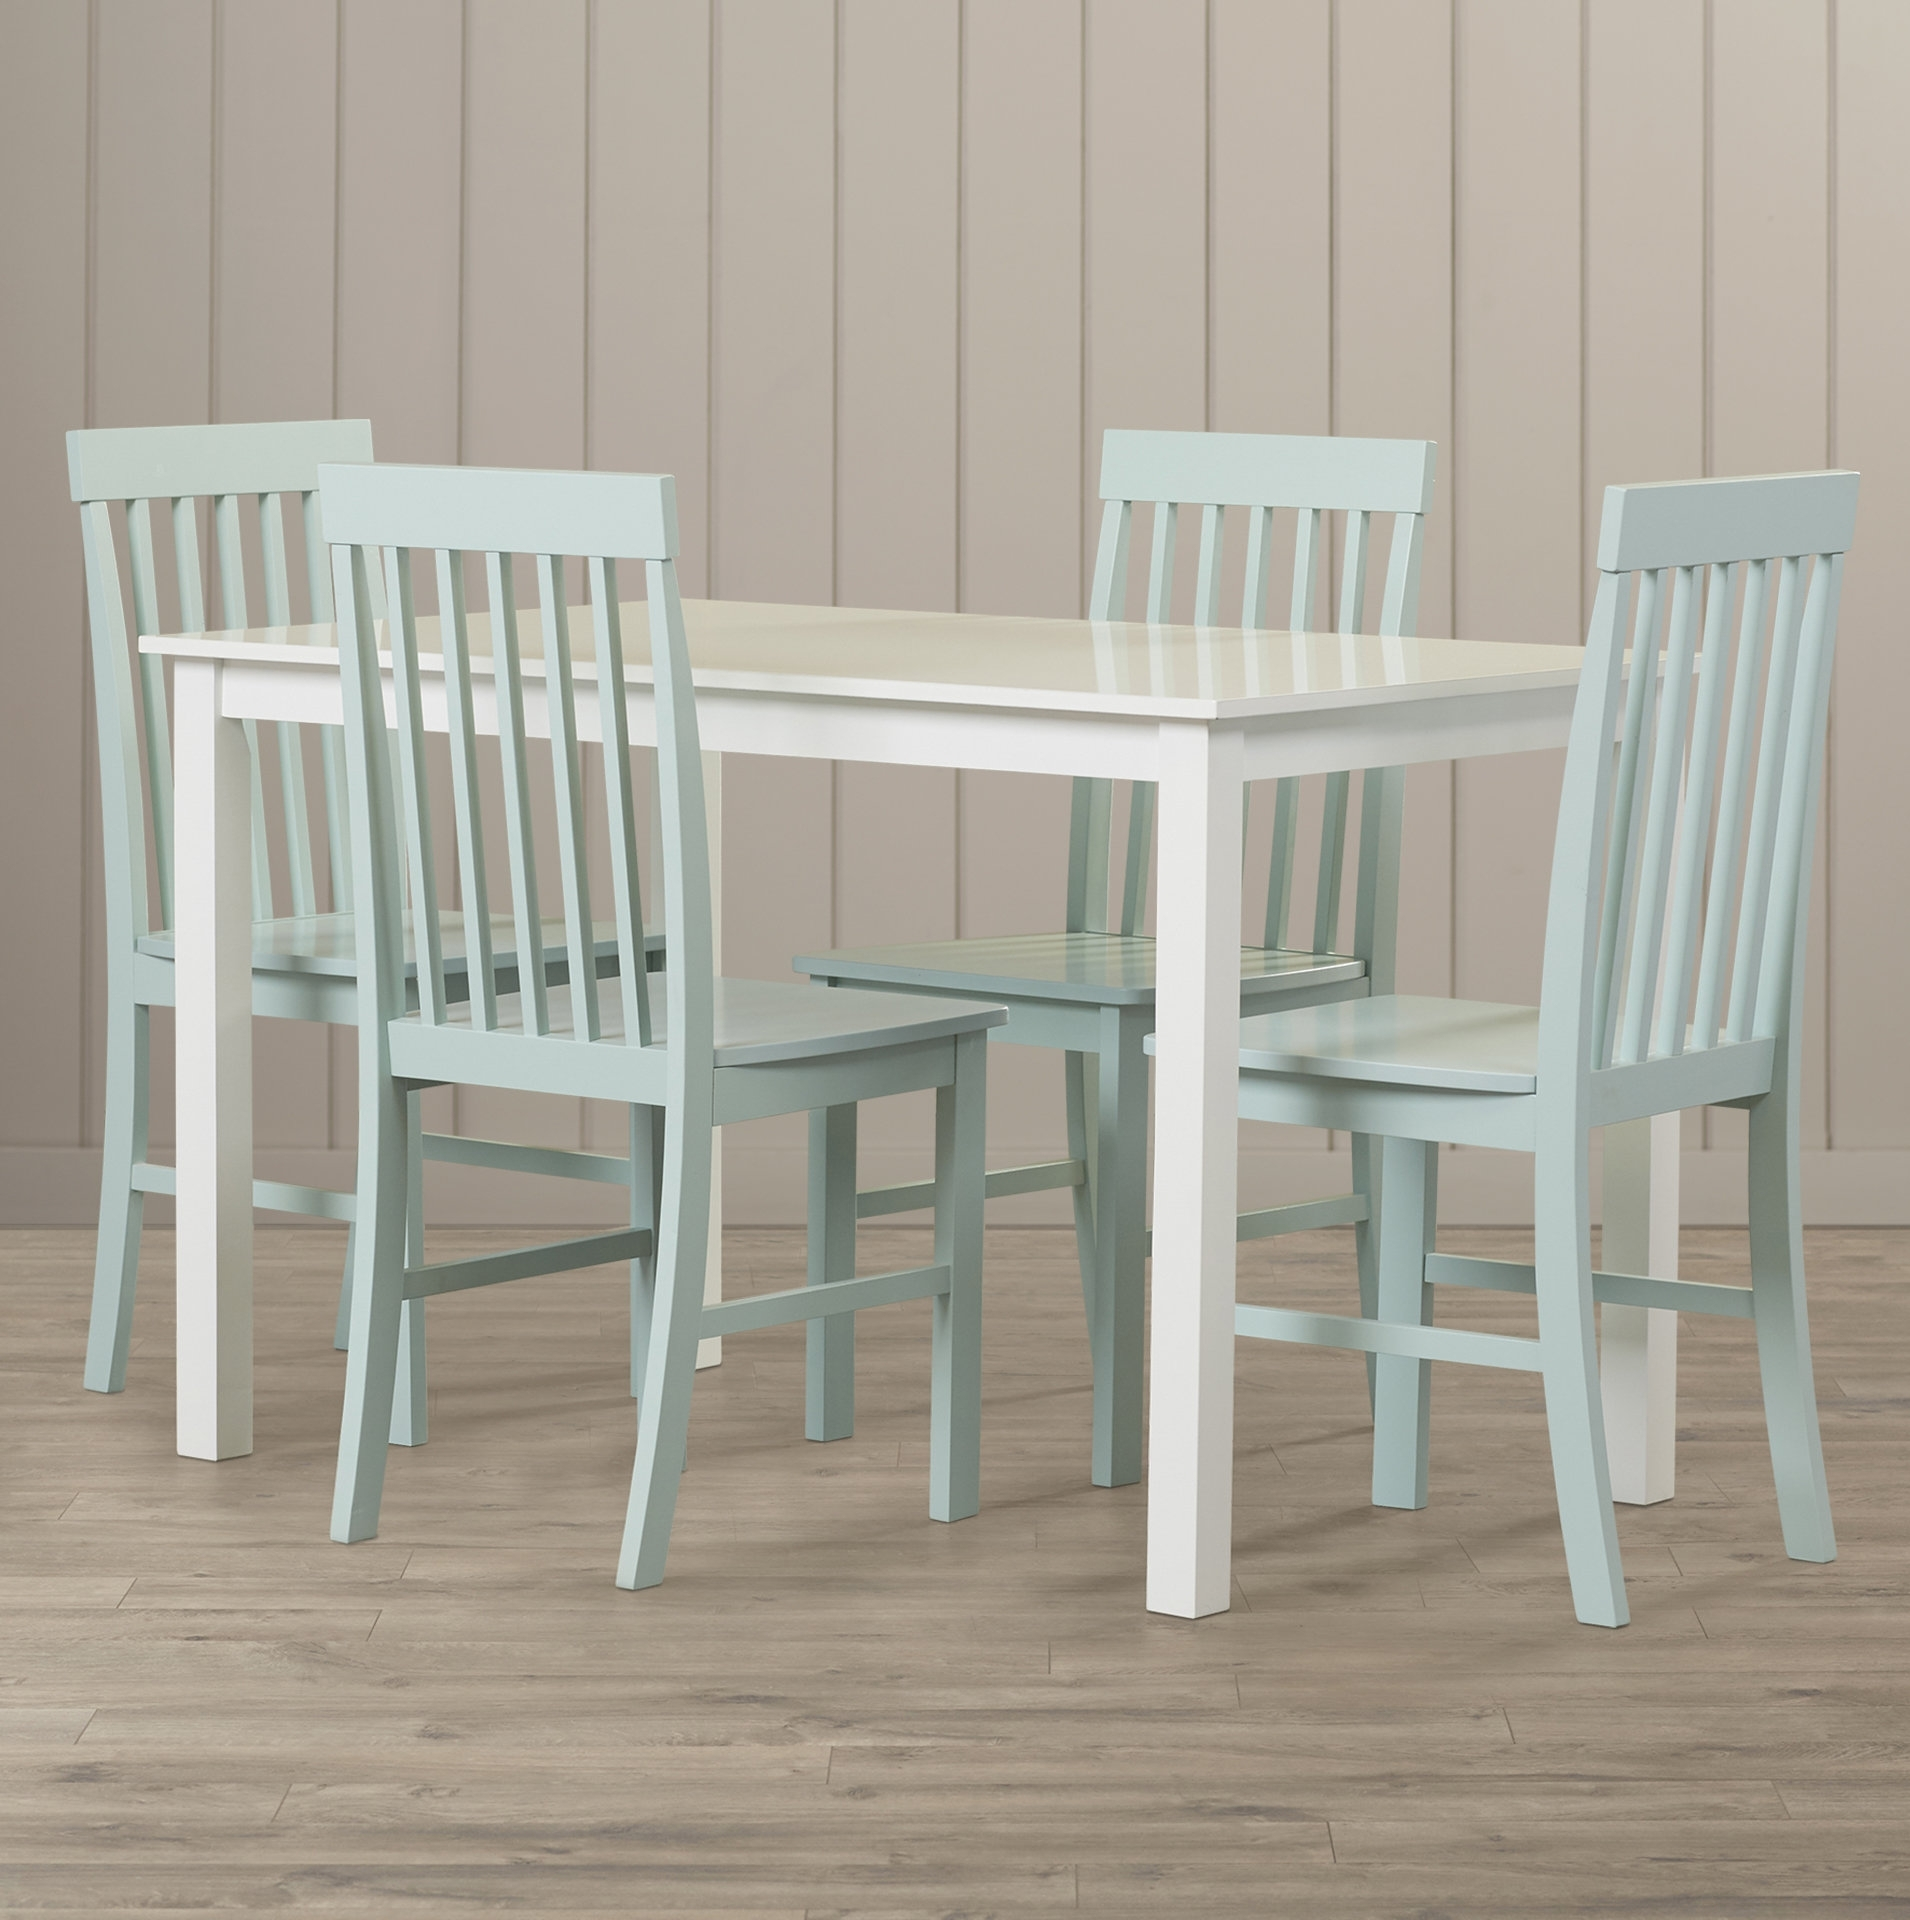 Beachcrest Home Cienna 5 Piece Dining Set & Reviews | Wayfair With Regard To Most Up To Date Laurent 5 Piece Round Dining Sets With Wood Chairs (Image 5 of 20)